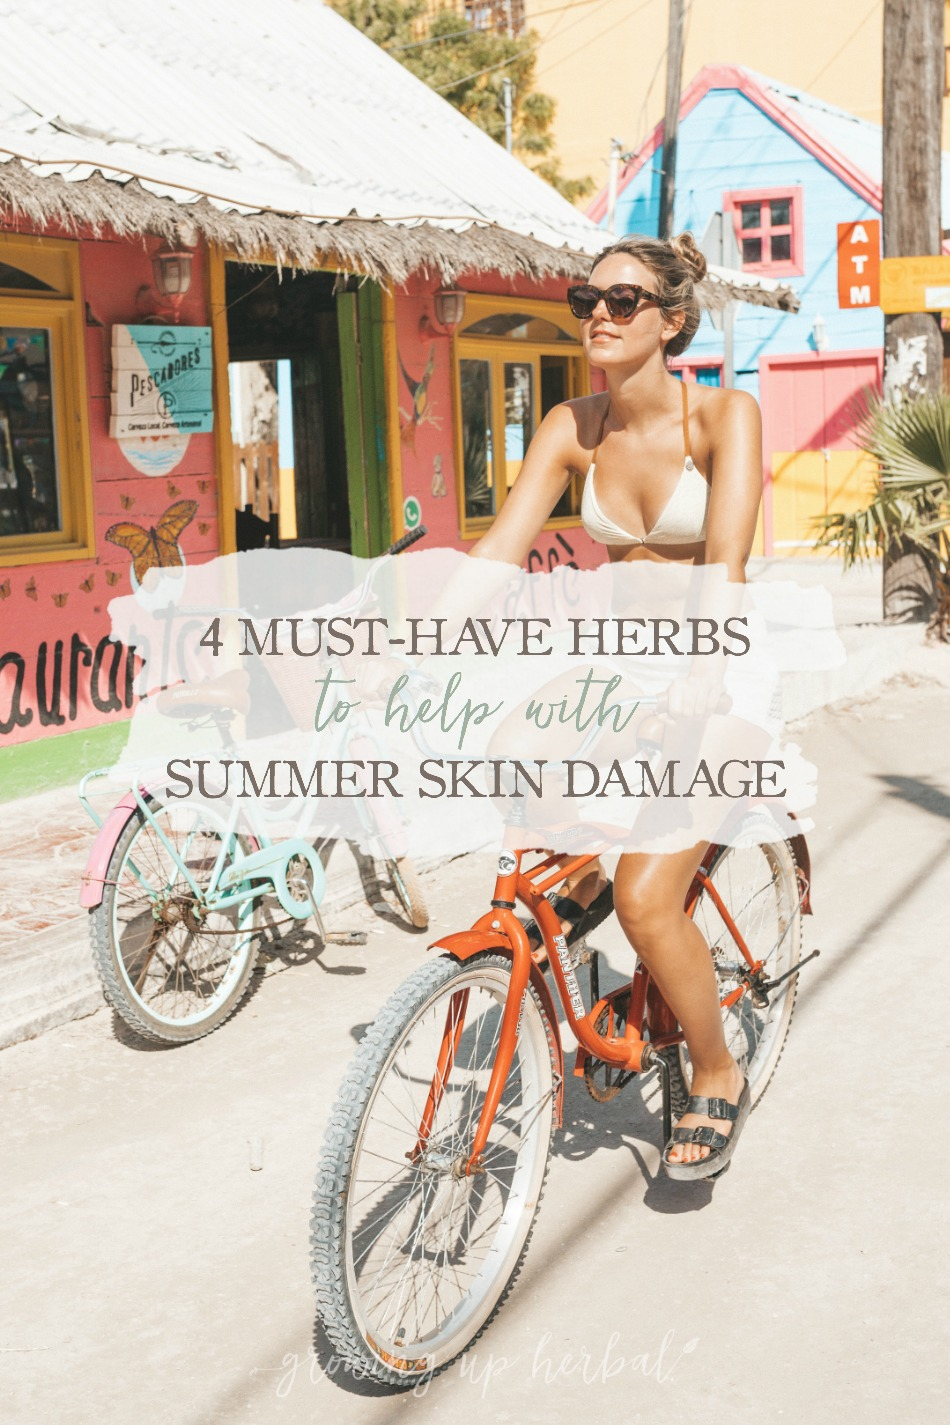 4 Must-Have Herbs to Help with Summer Skin Damage | Growing Up Herbal | Looking for help for sun damaged skin this summer? Here are four herbs that can come to your rescue!